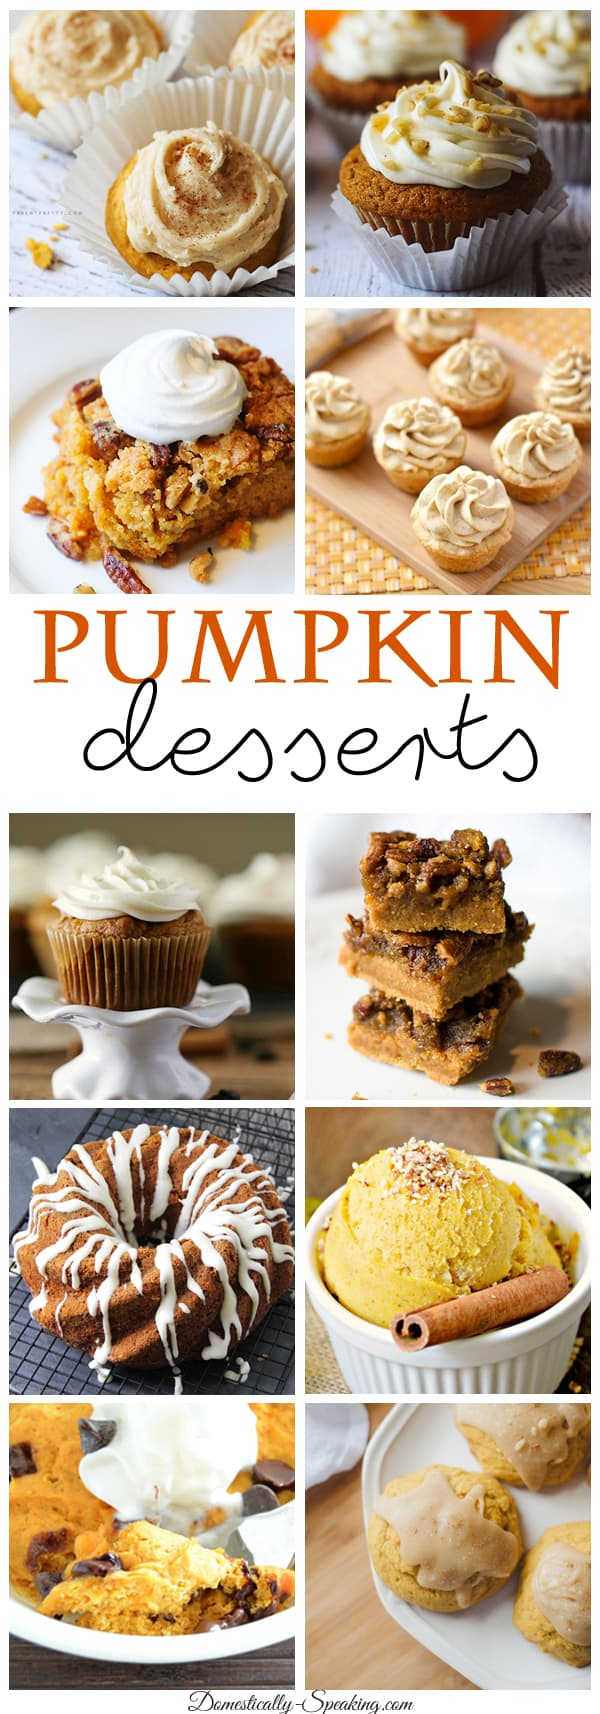 Pumpkin Dessert Recipes perfect for fall